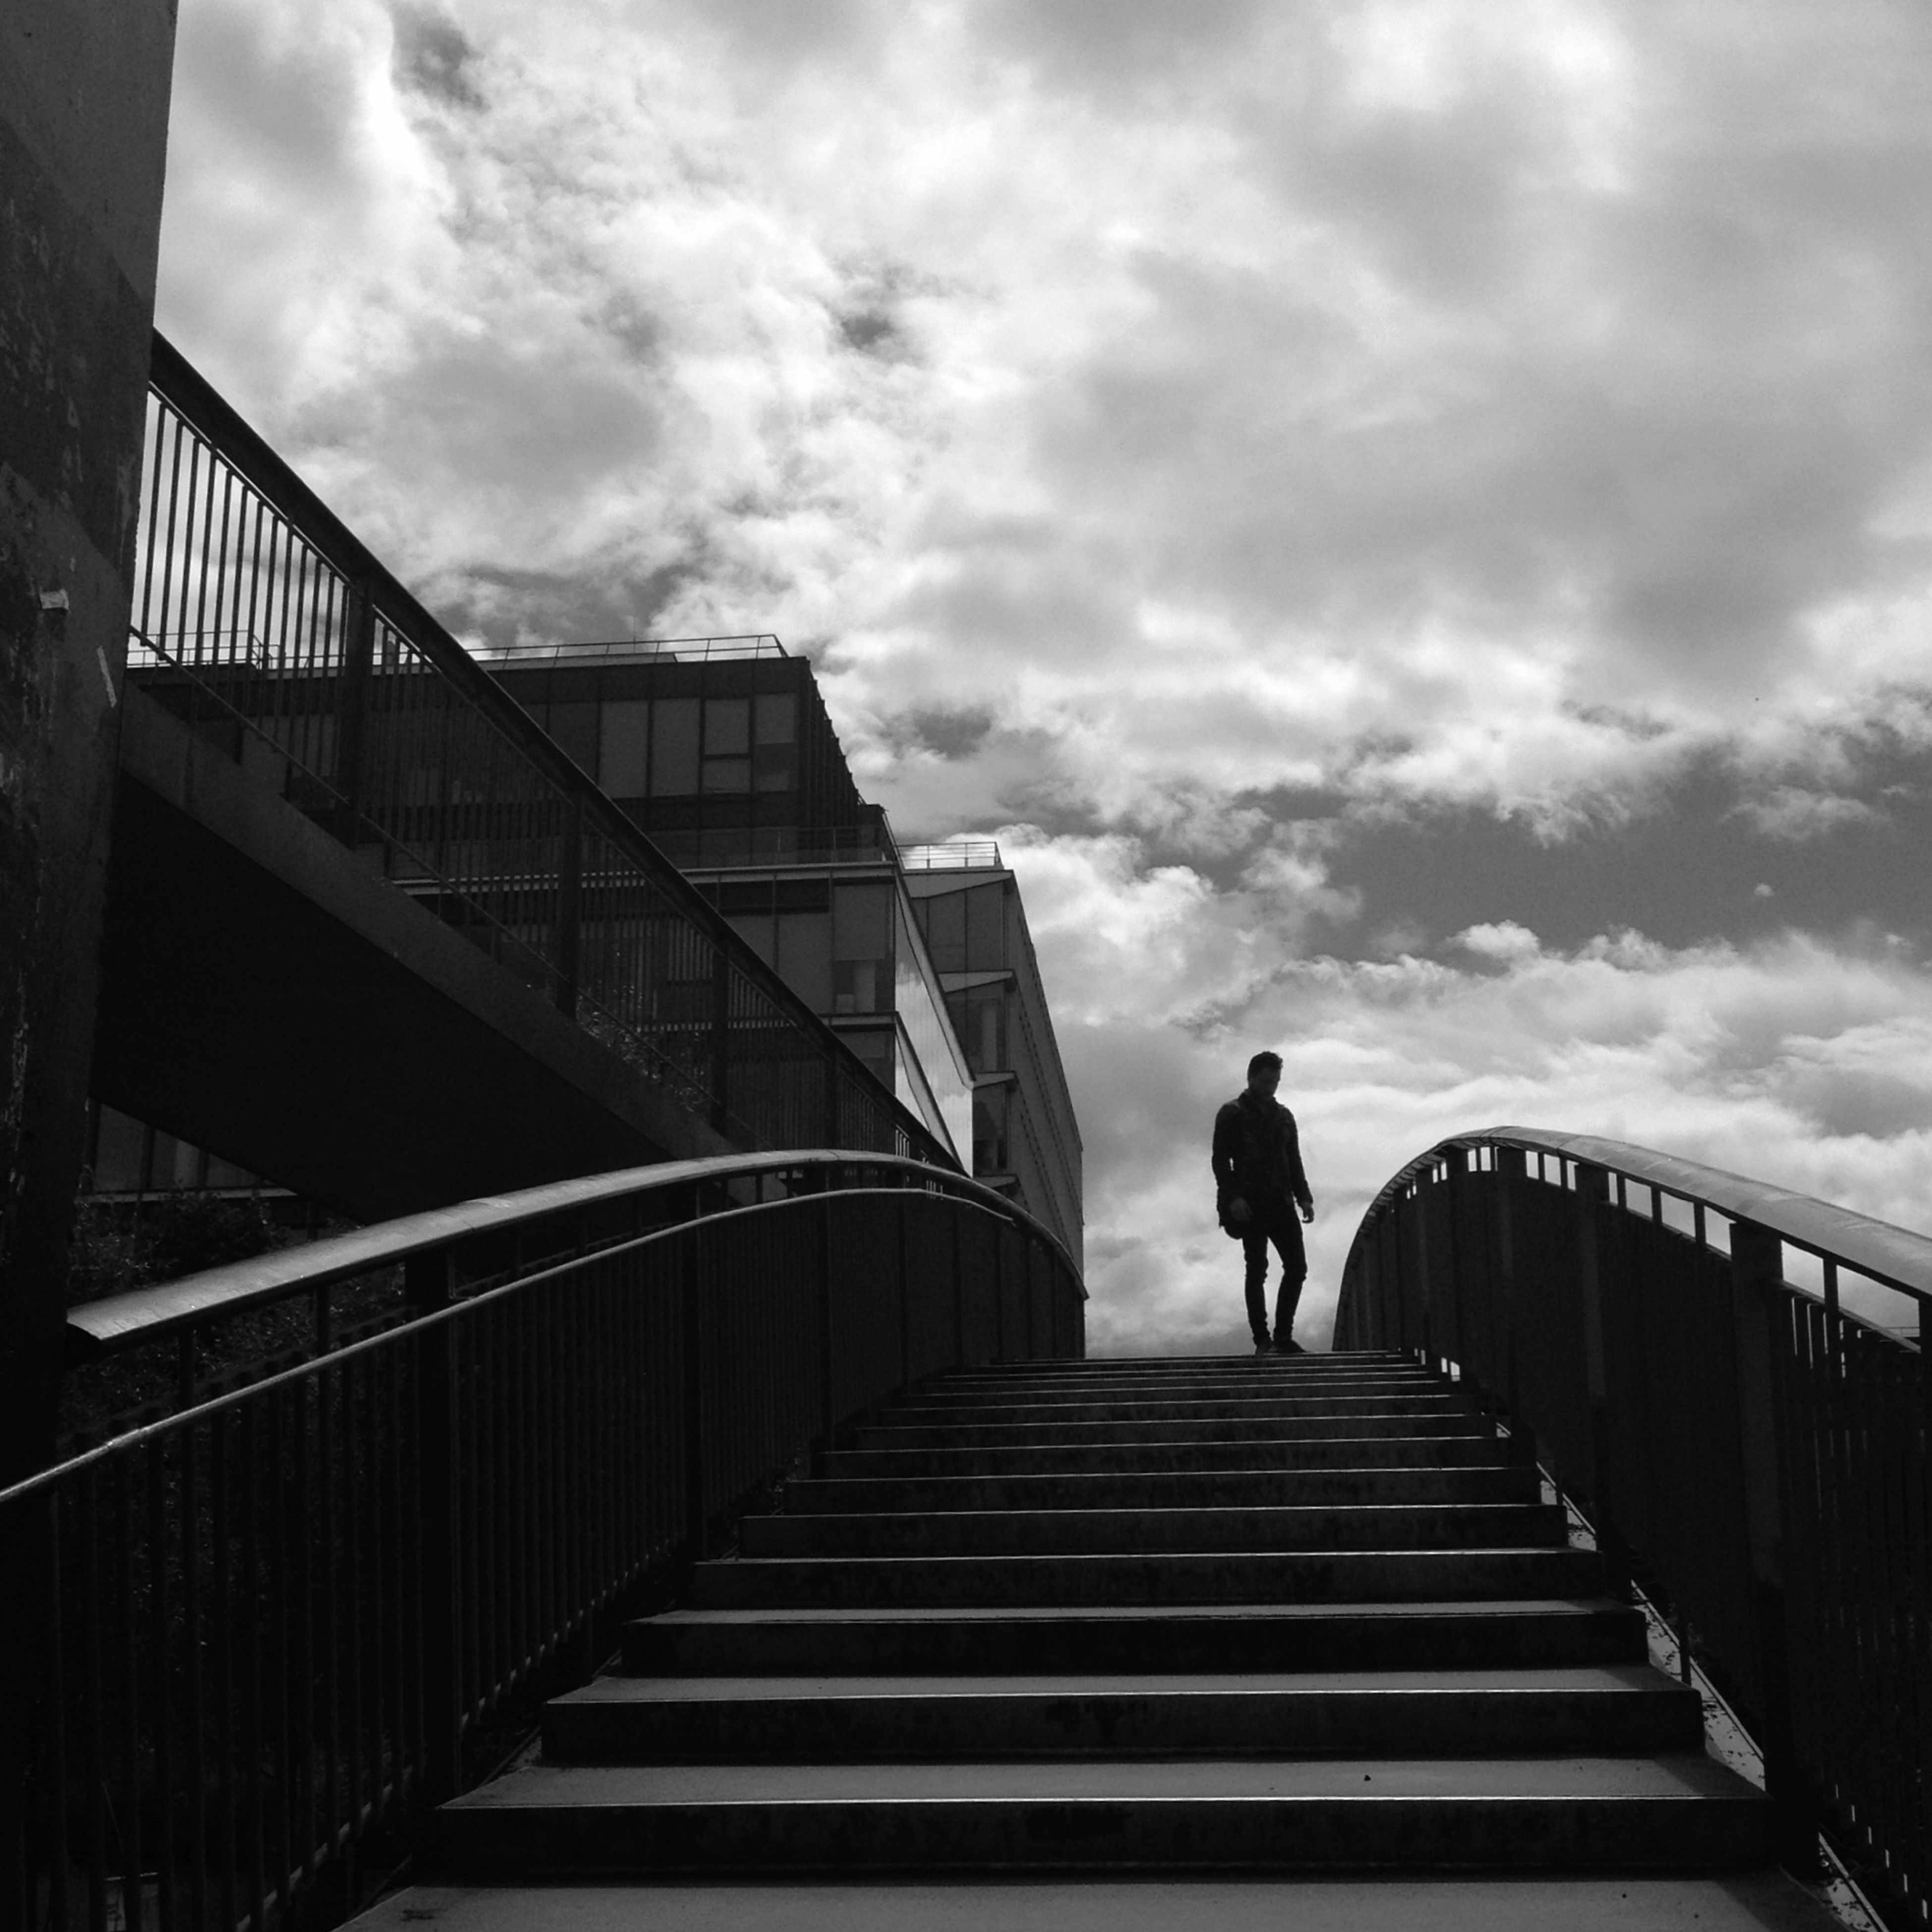 built structure, architecture, railing, sky, full length, walking, rear view, men, lifestyles, low angle view, the way forward, steps, silhouette, cloud - sky, leisure activity, building exterior, steps and staircases, person